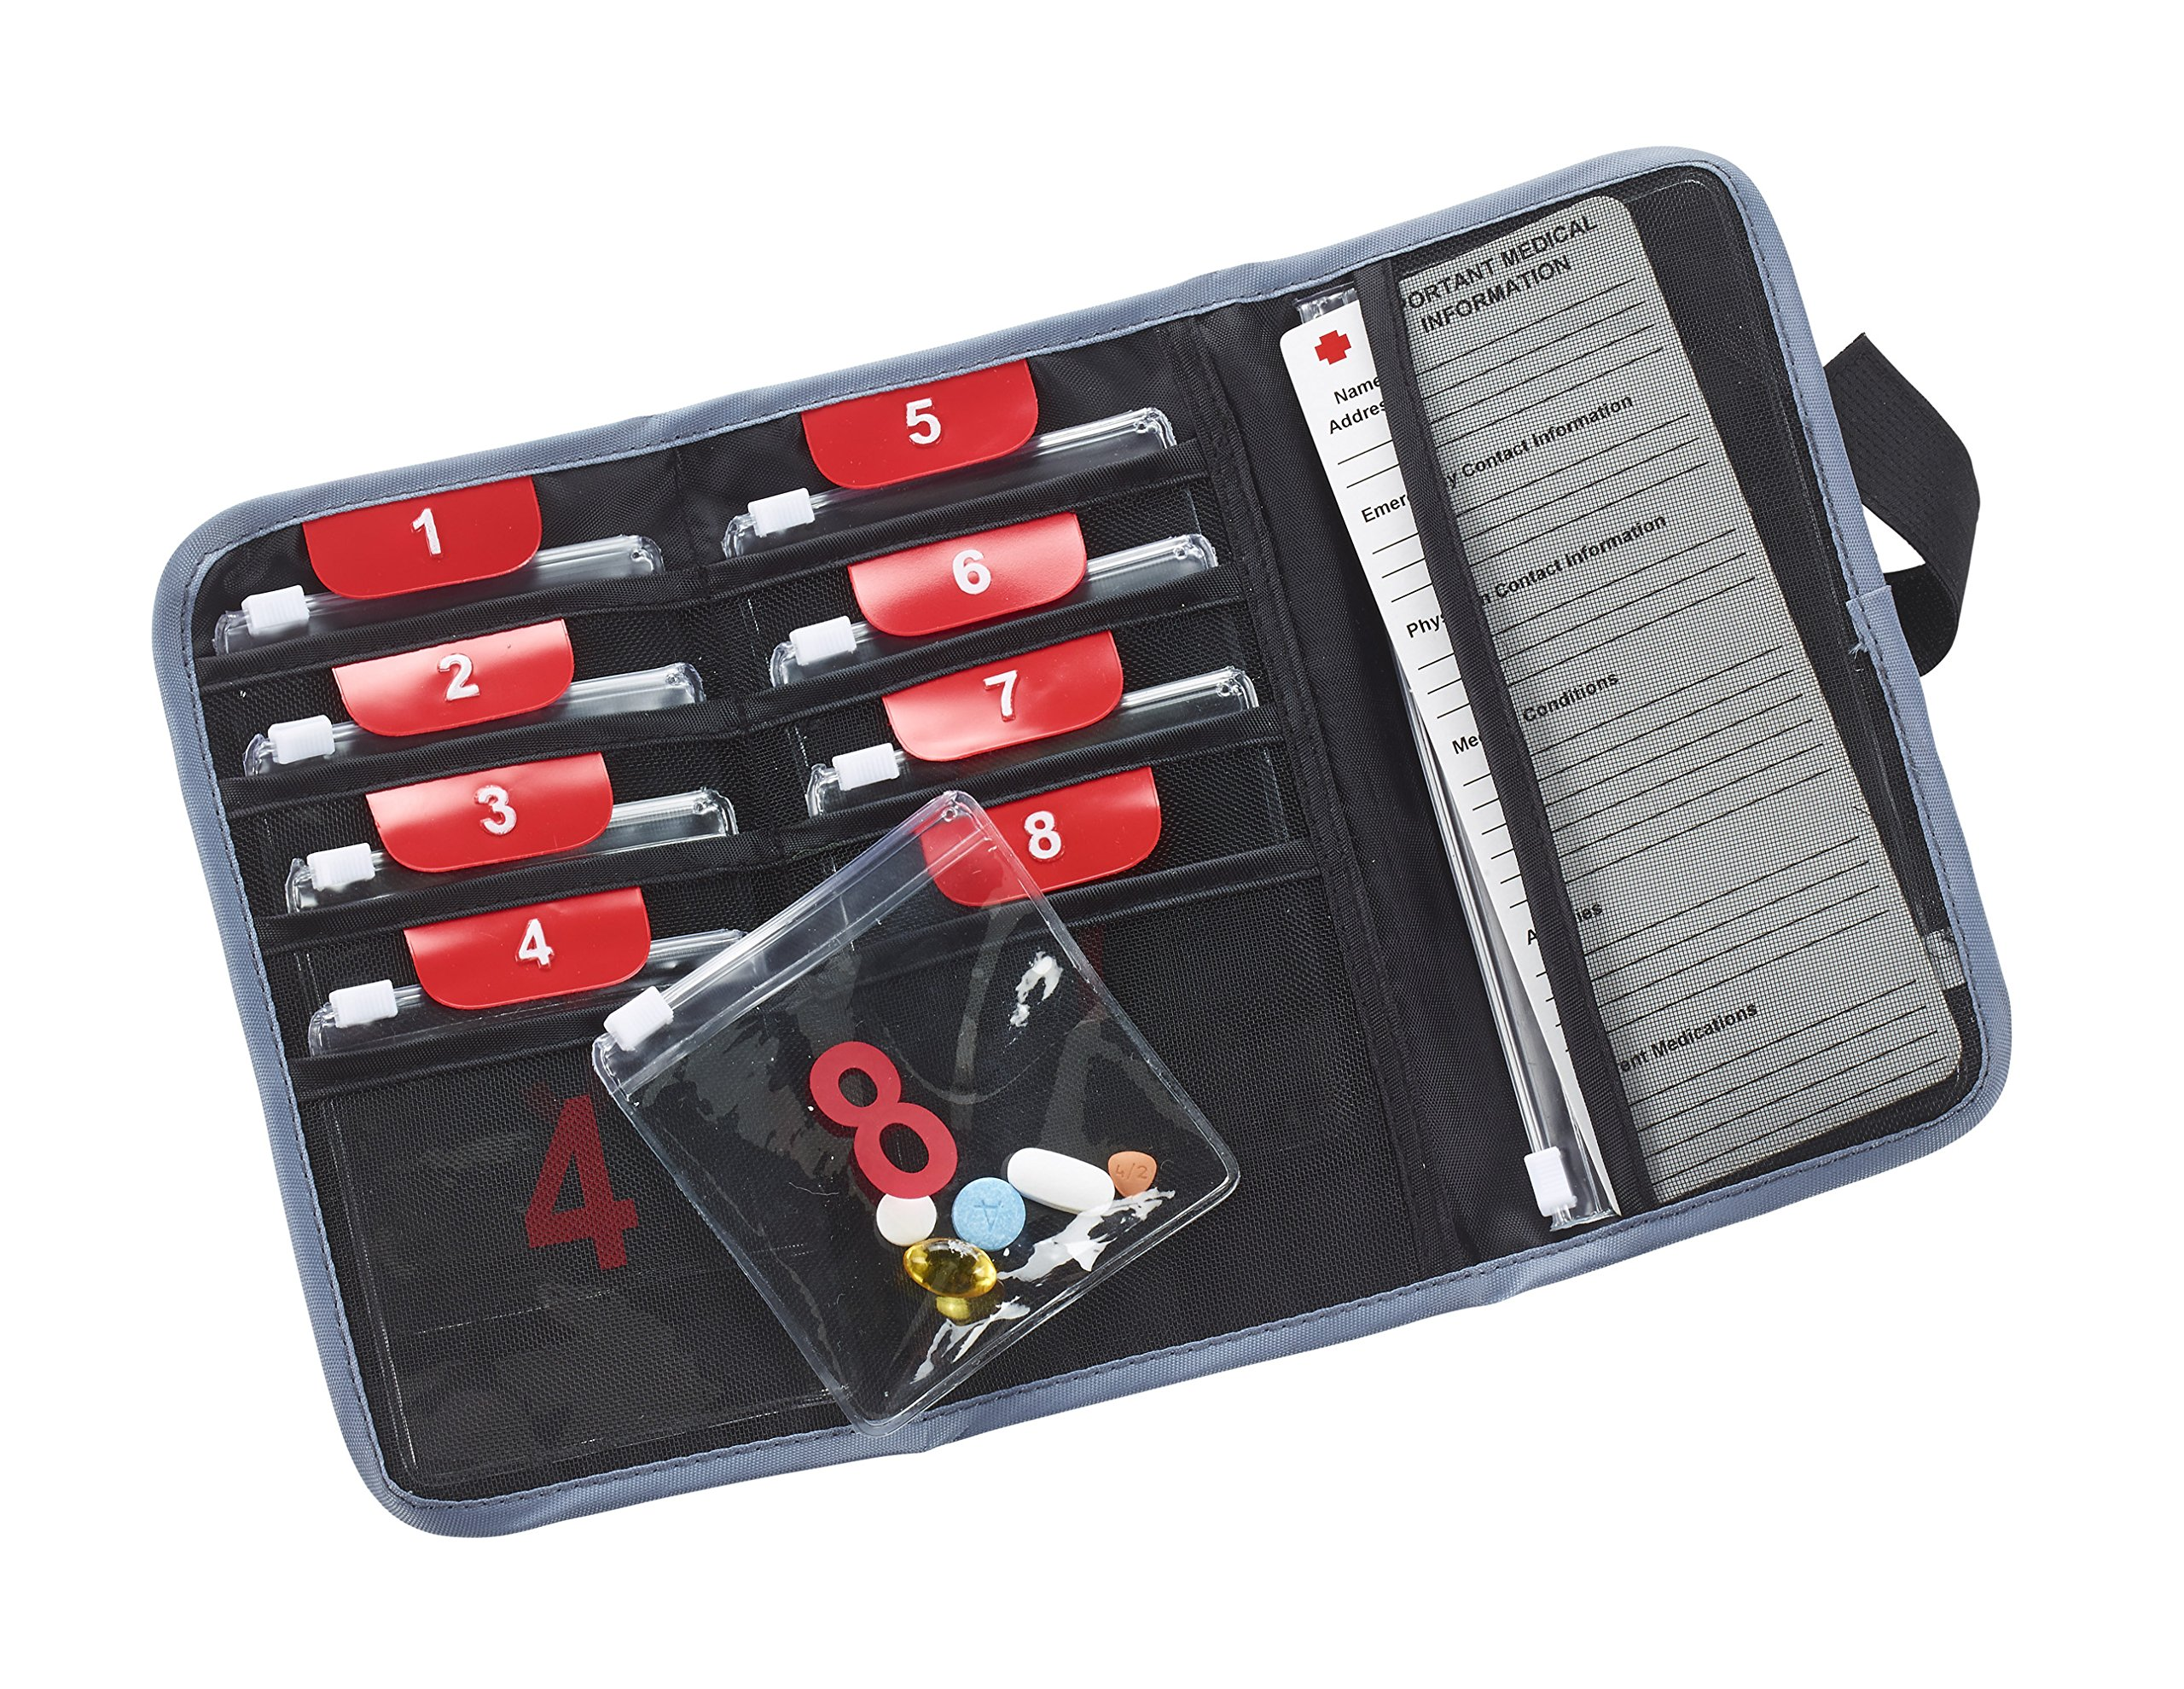 Lewis N. Clark Deluxe Pill Organizer With 9 Slide-Locking Pouches, Black by Lewis N. Clark (Image #1)